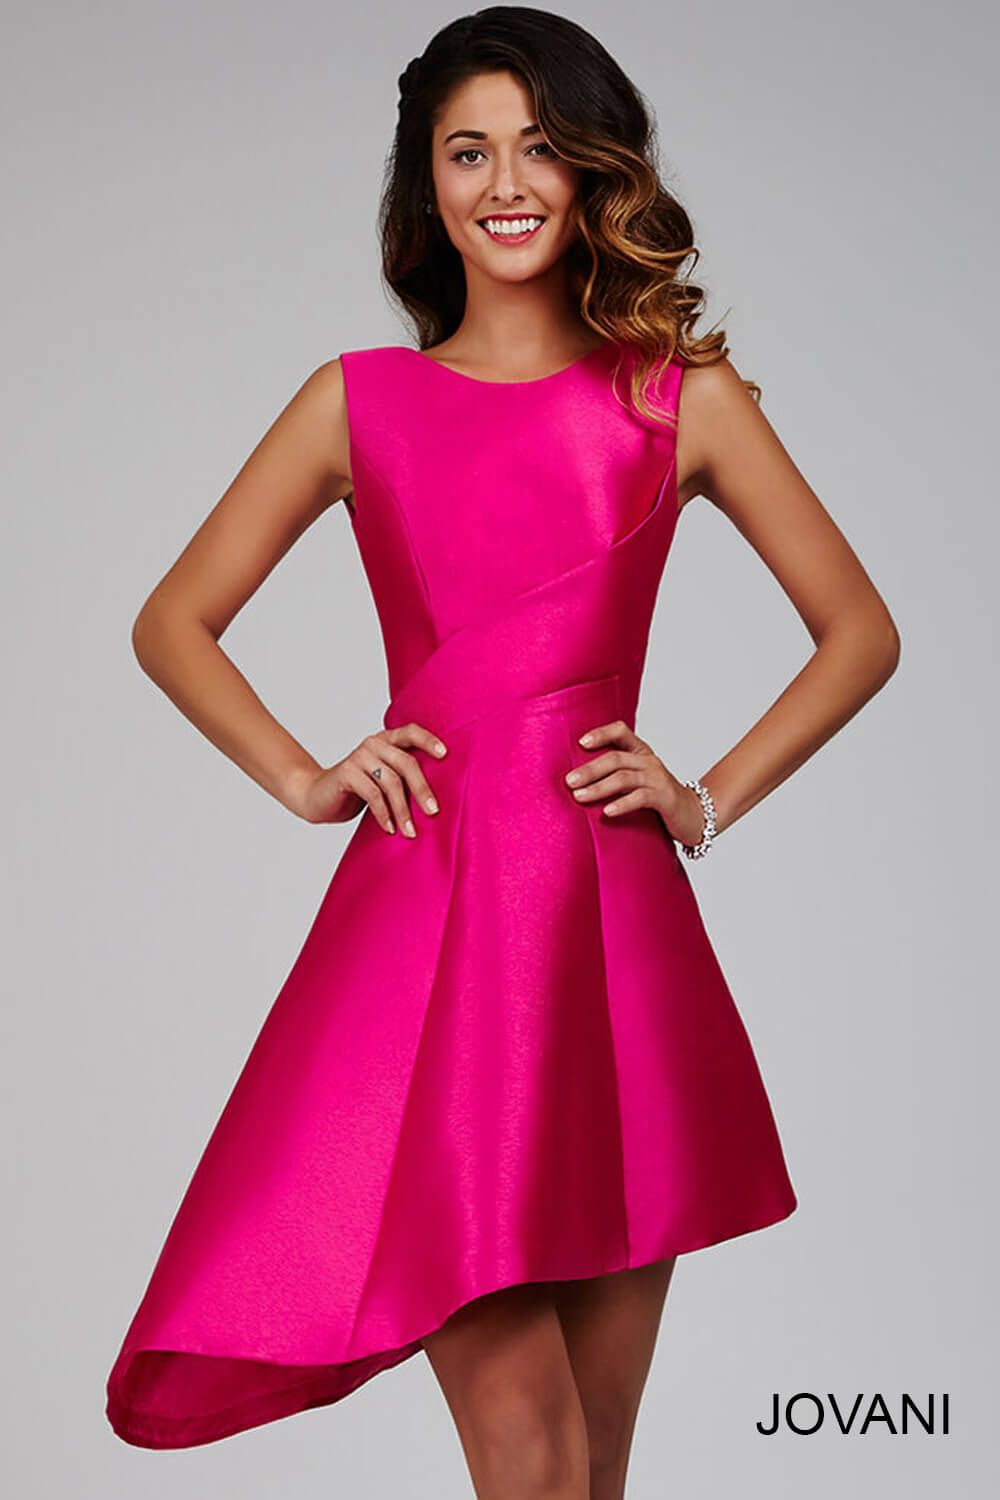 55cf01ad01b Rock this  jovani 214018 bright pink dress for your prom 2016.